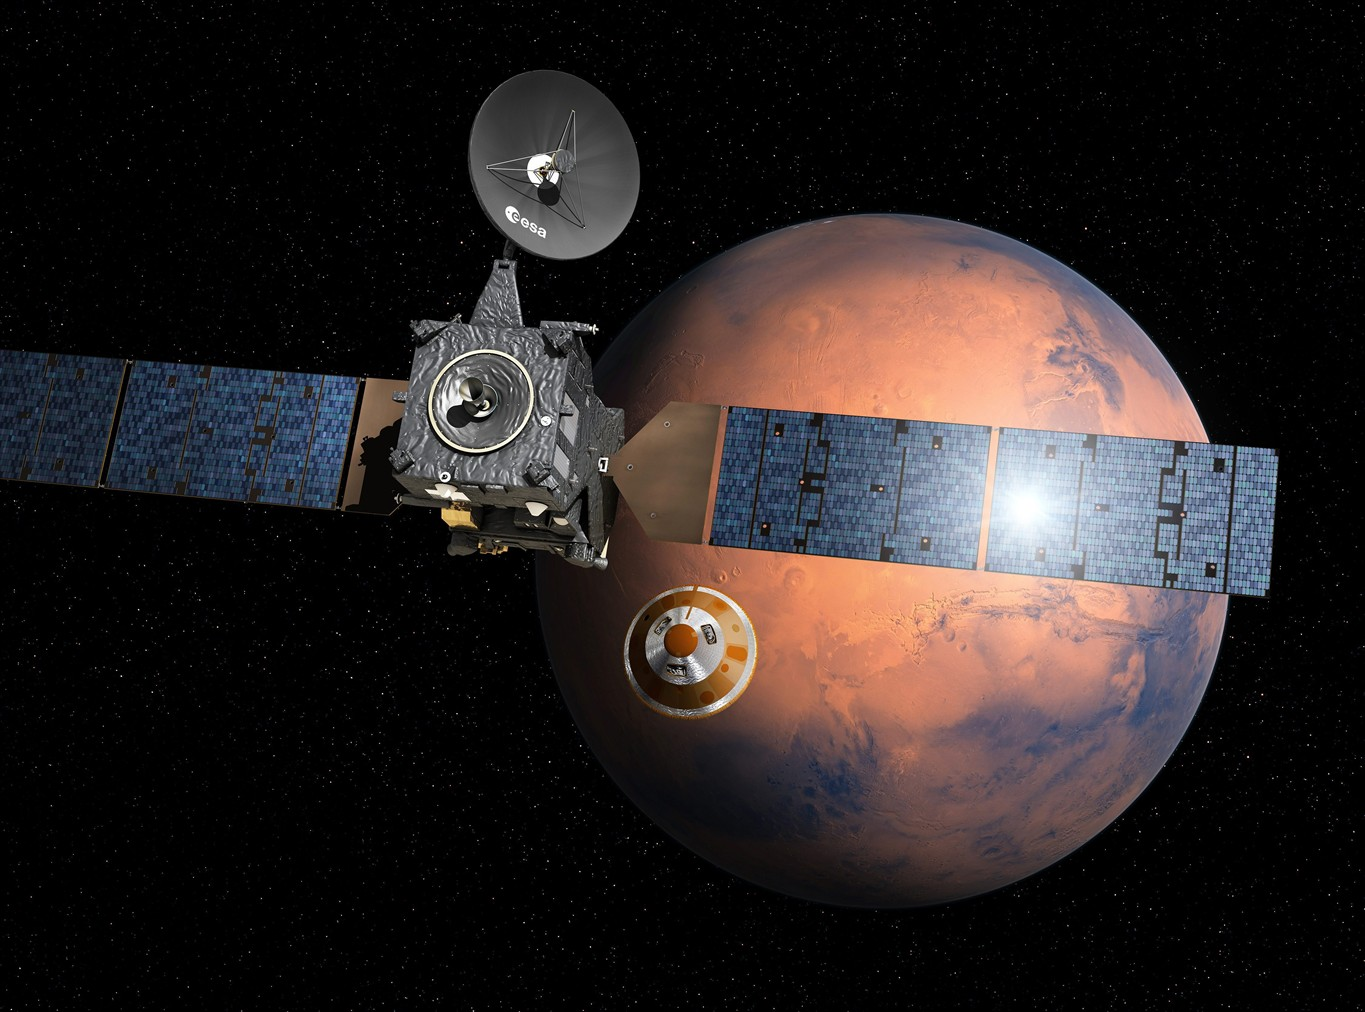 Mars probe enters atmosphere; word on landing awaited